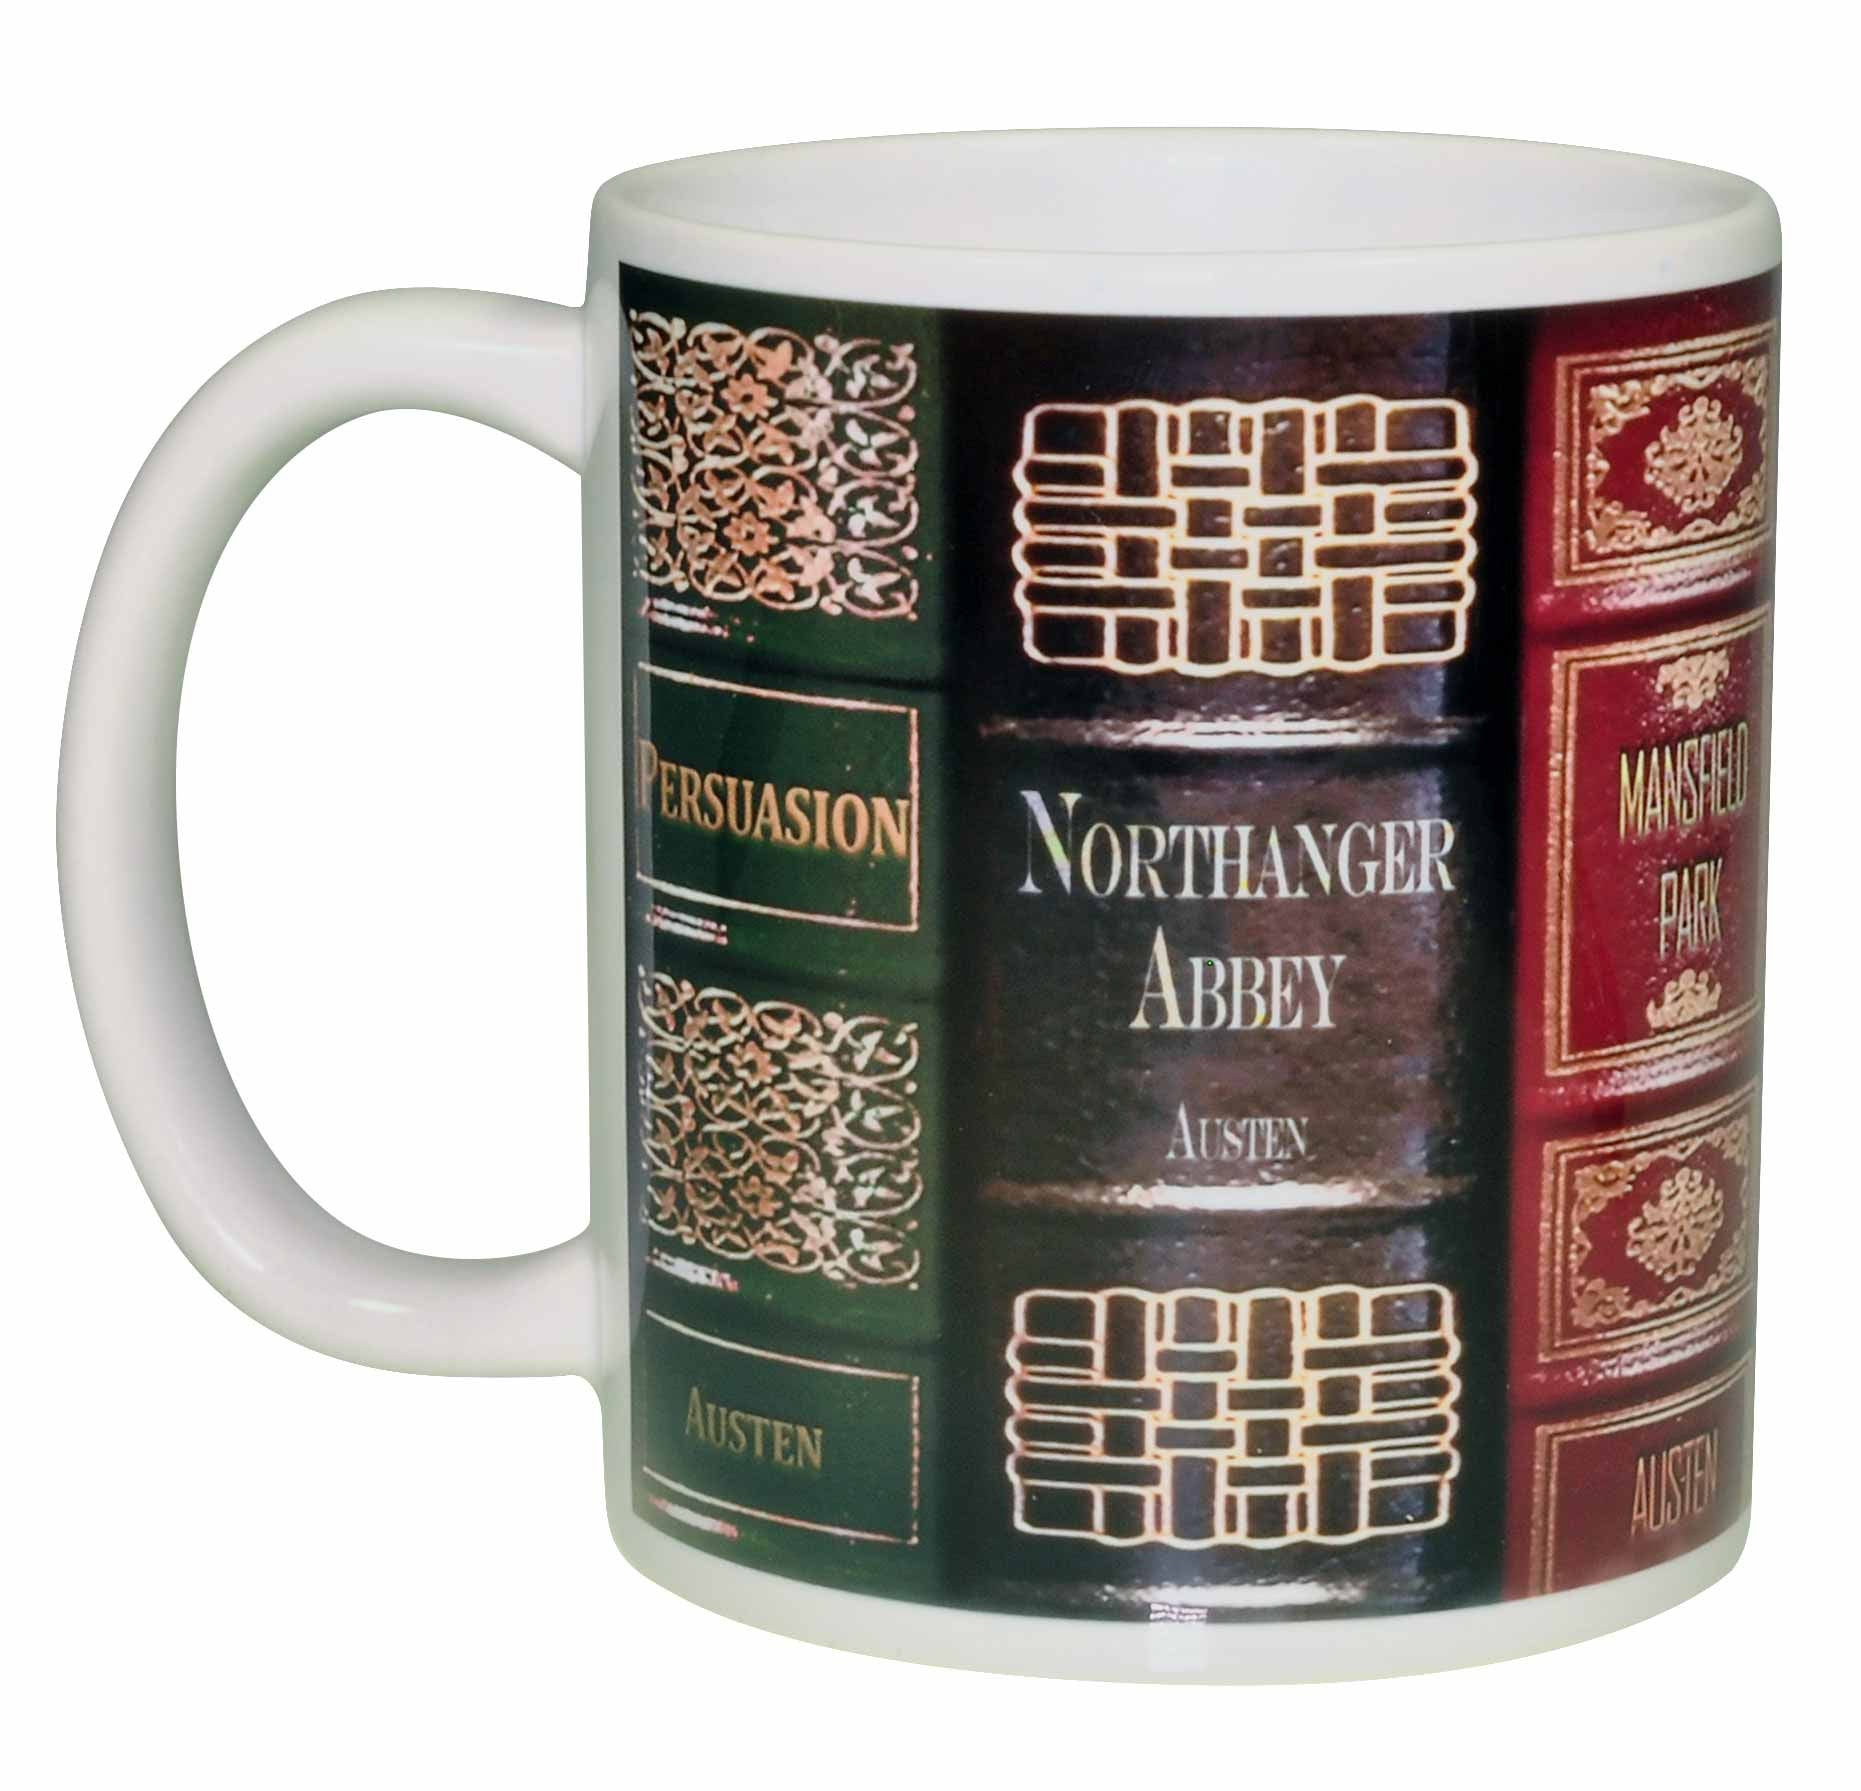 Jane Austen Novels Wraparound Coffee or Tea Mug – Neurons Not